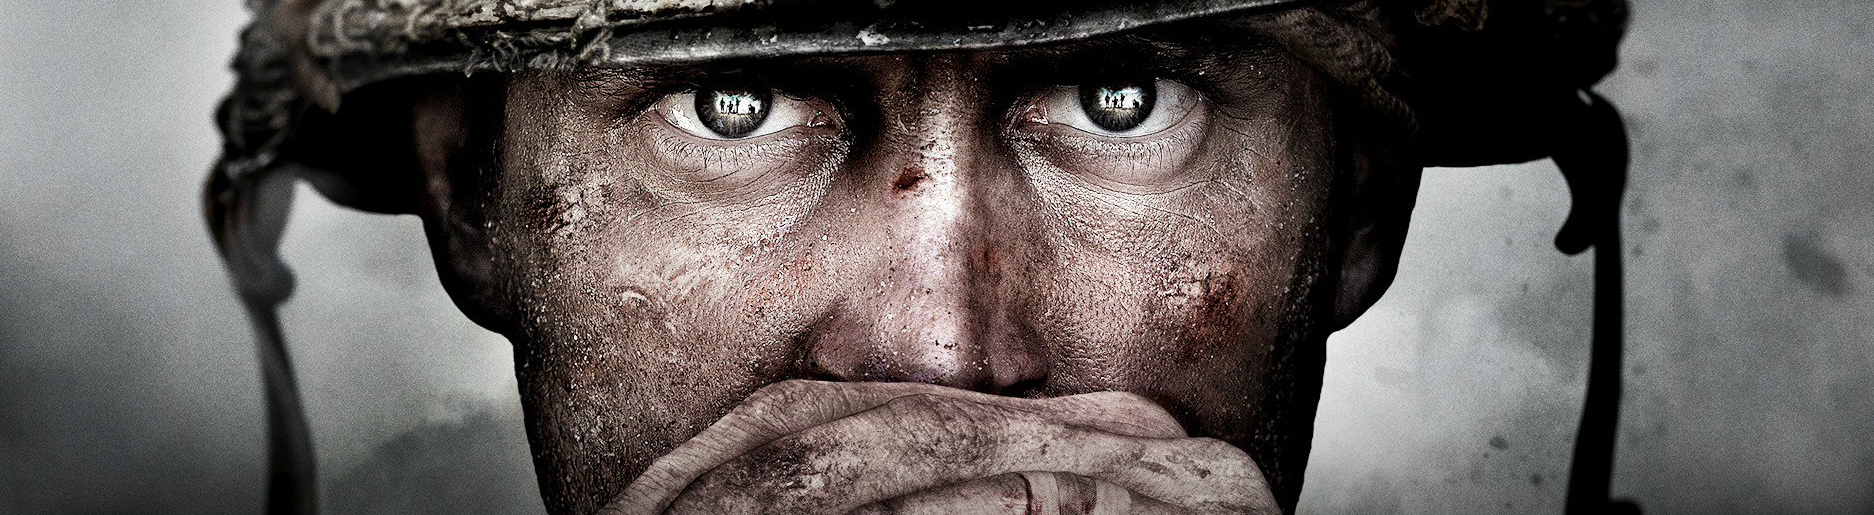 Call of Duty: WWII is your next COD, reveal coming next week screenshot